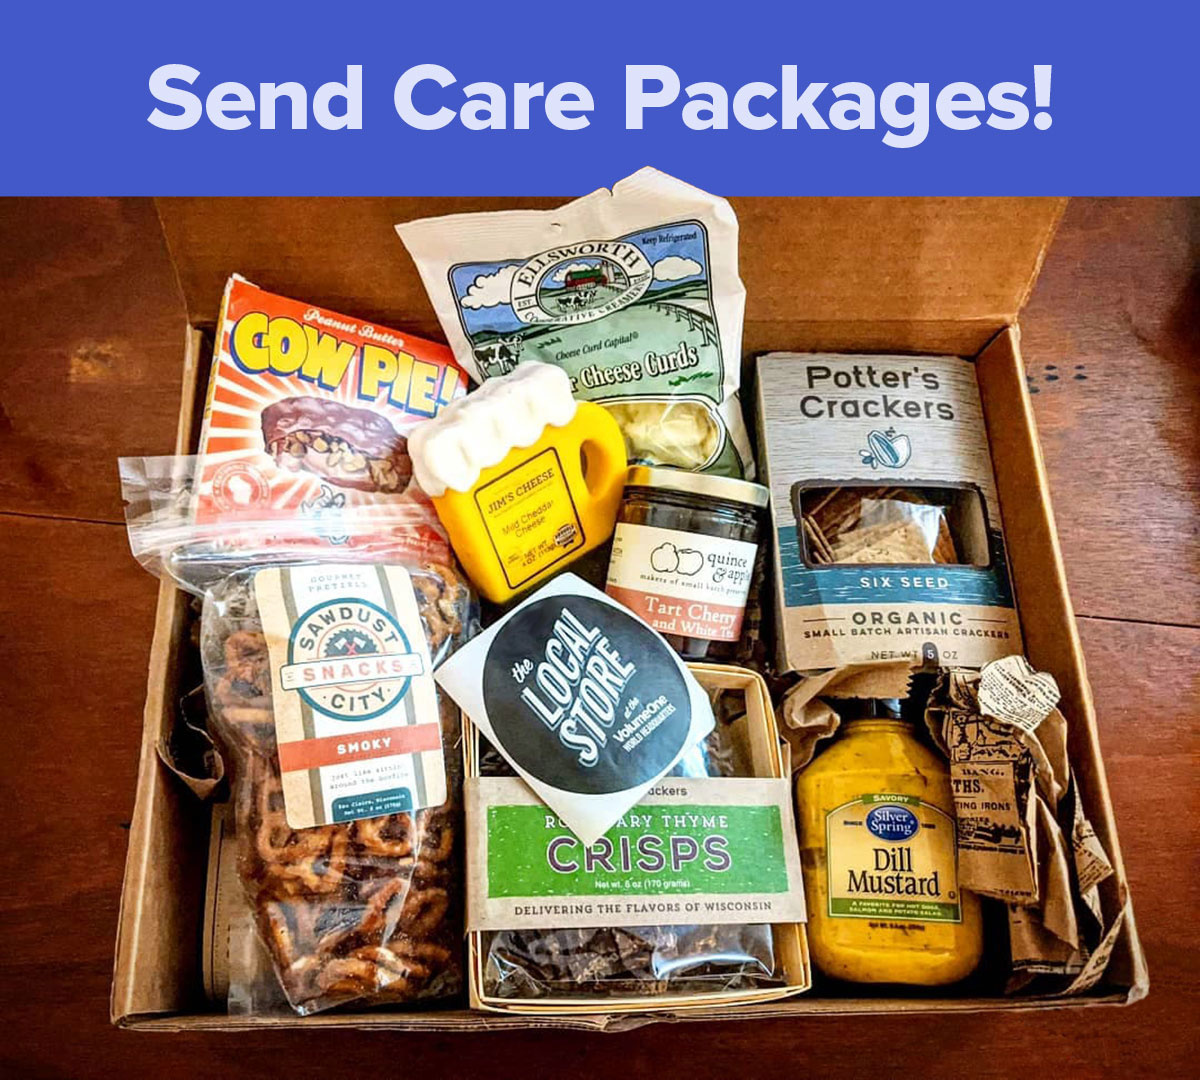 Send Care Packages!